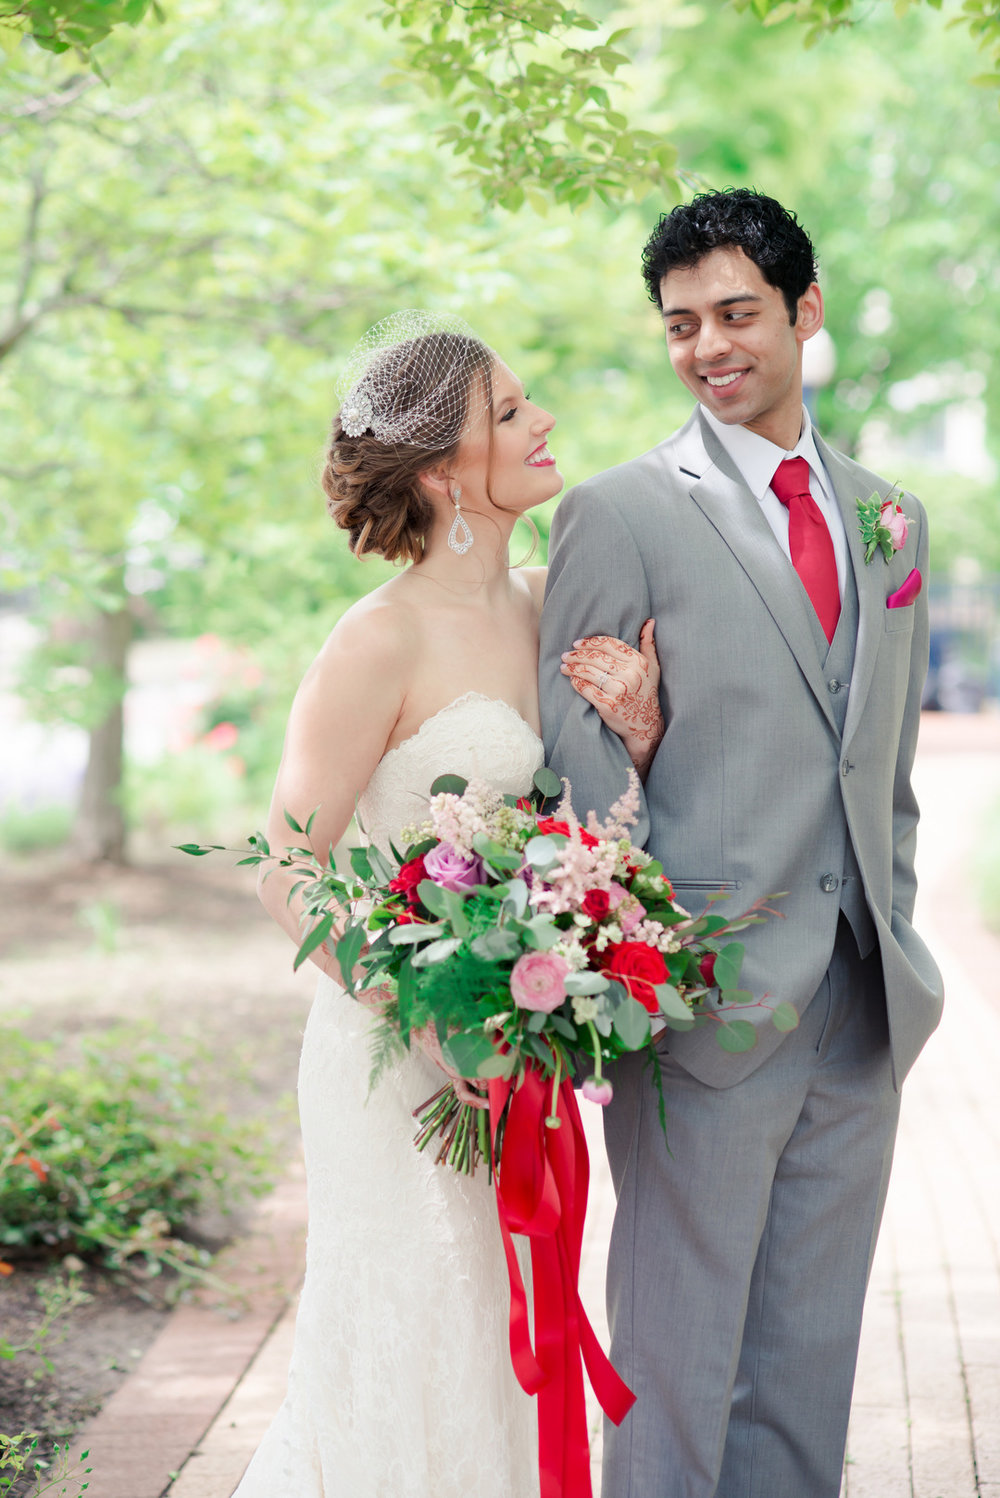 Callie & Shreyus Wedding